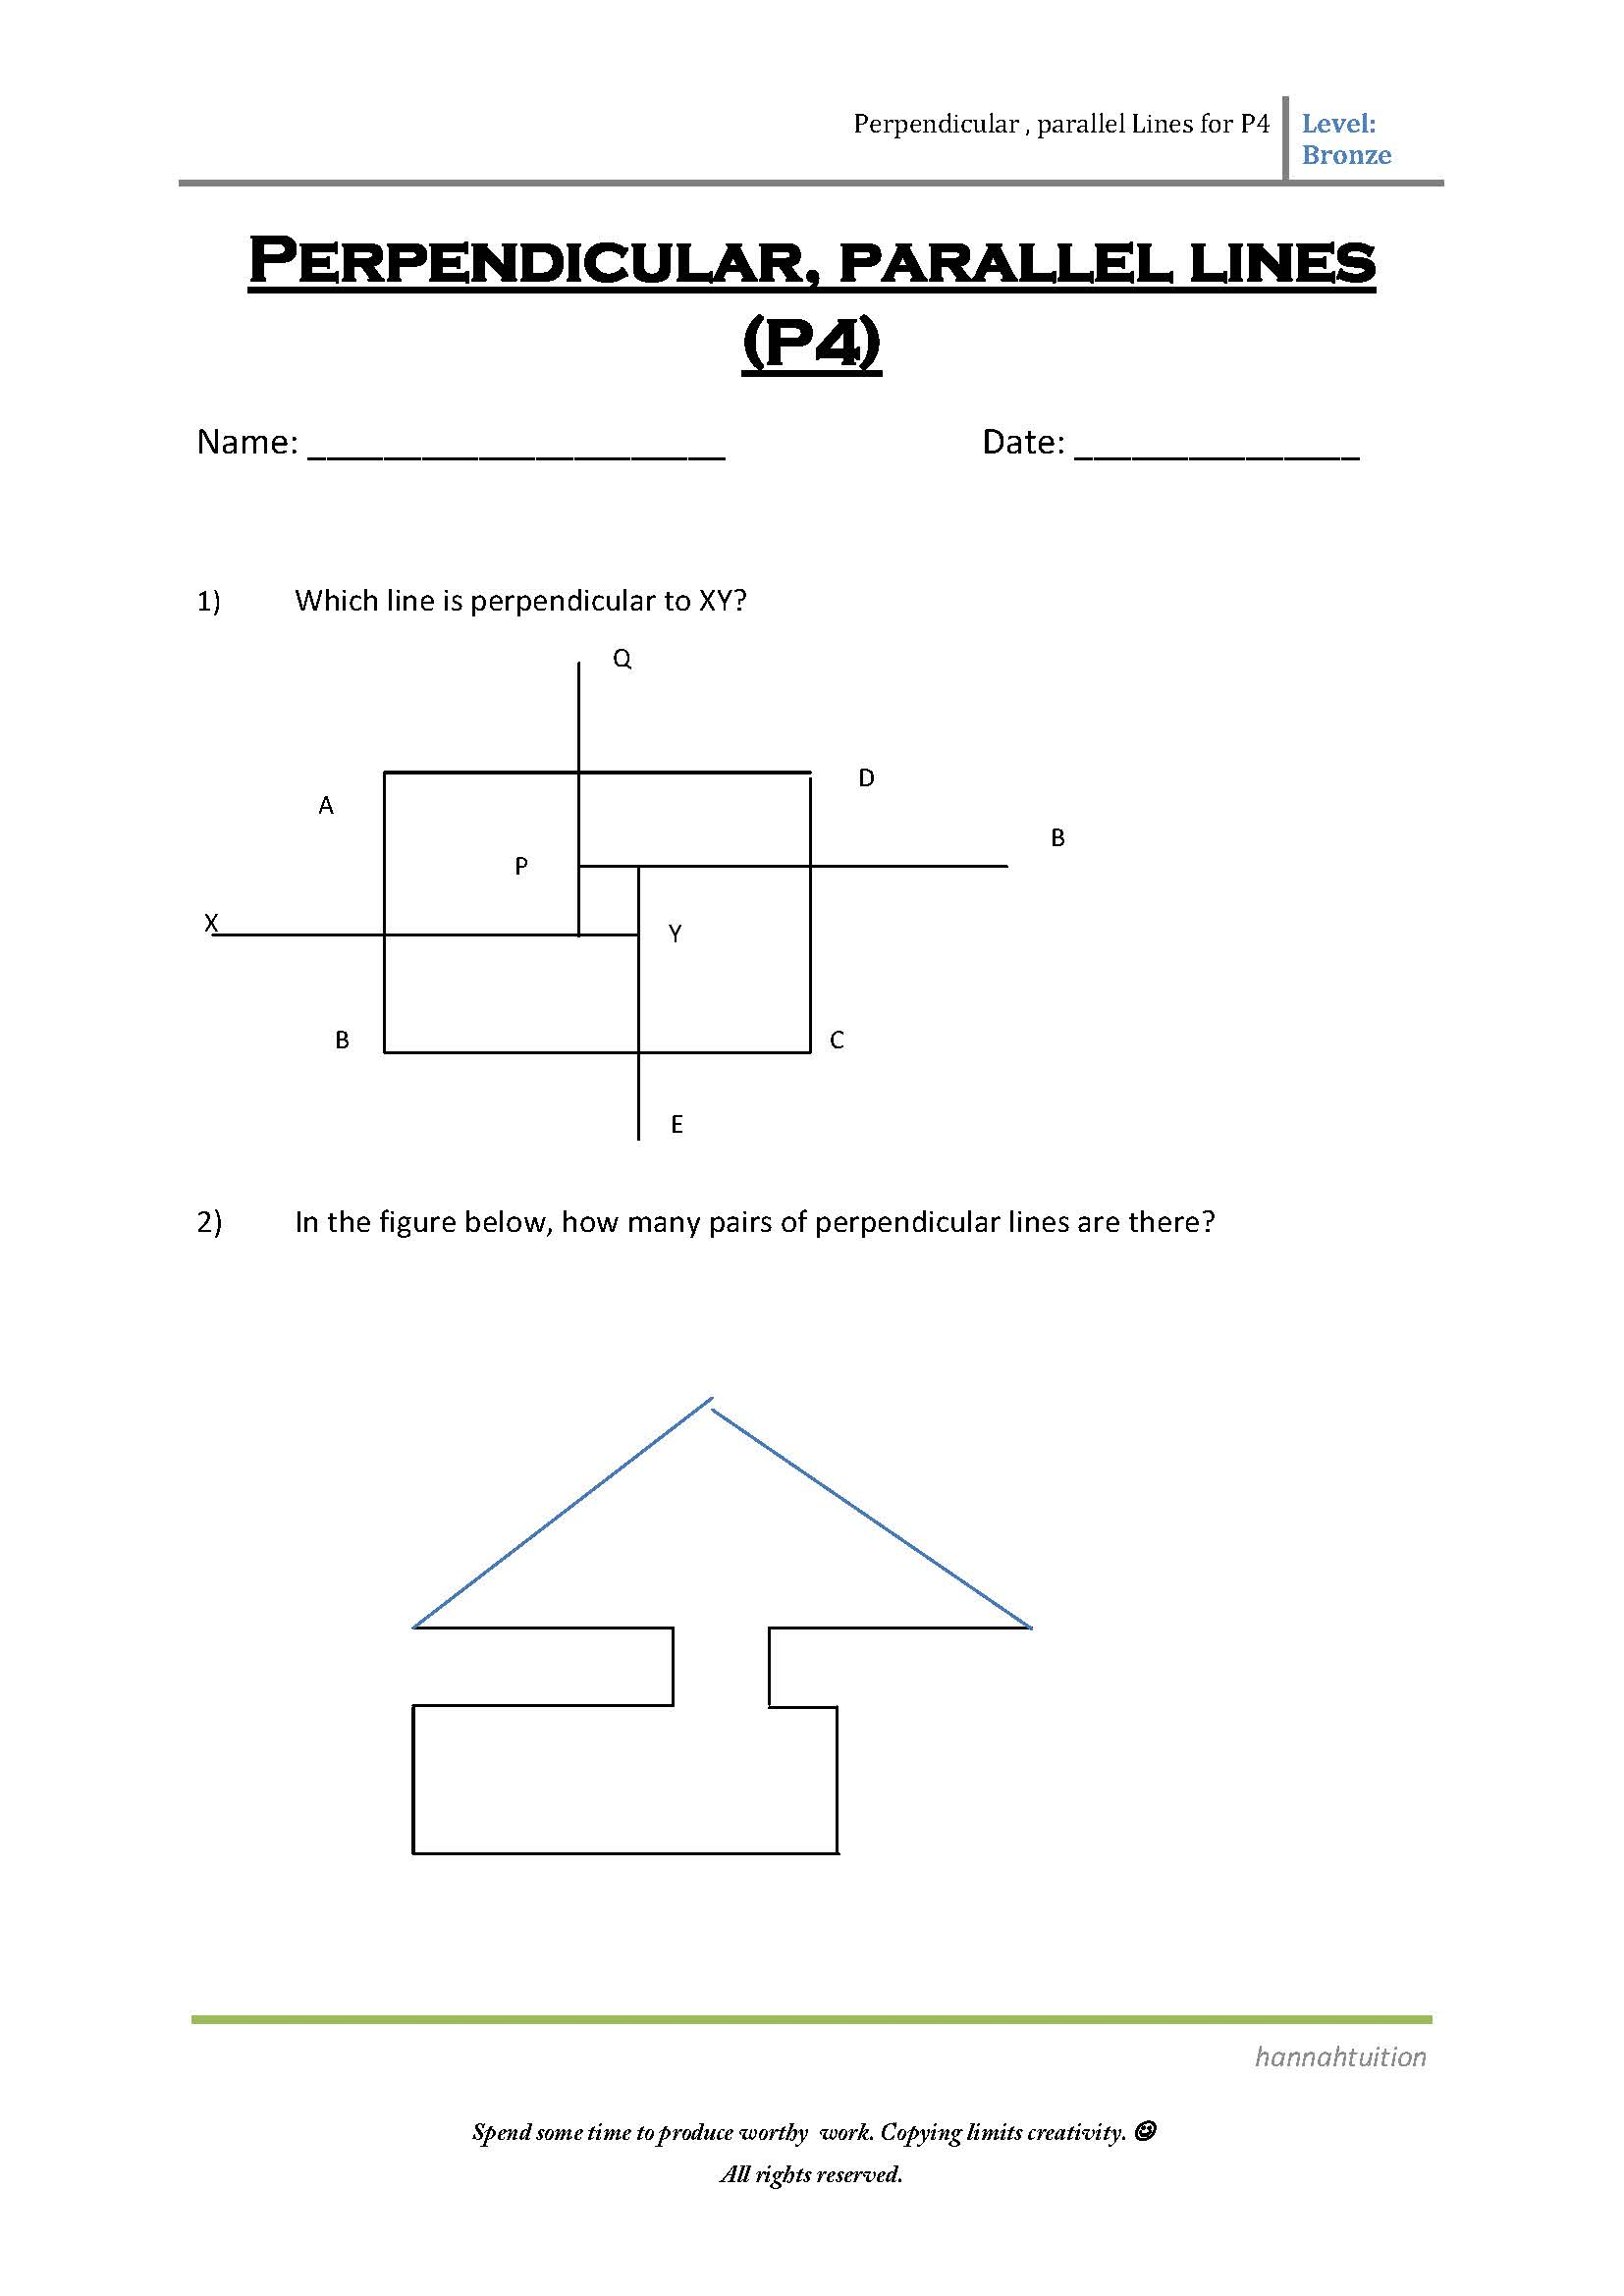 P4 Perpendicular And Parallel Lines Bronze Page 1 Hannahtuition